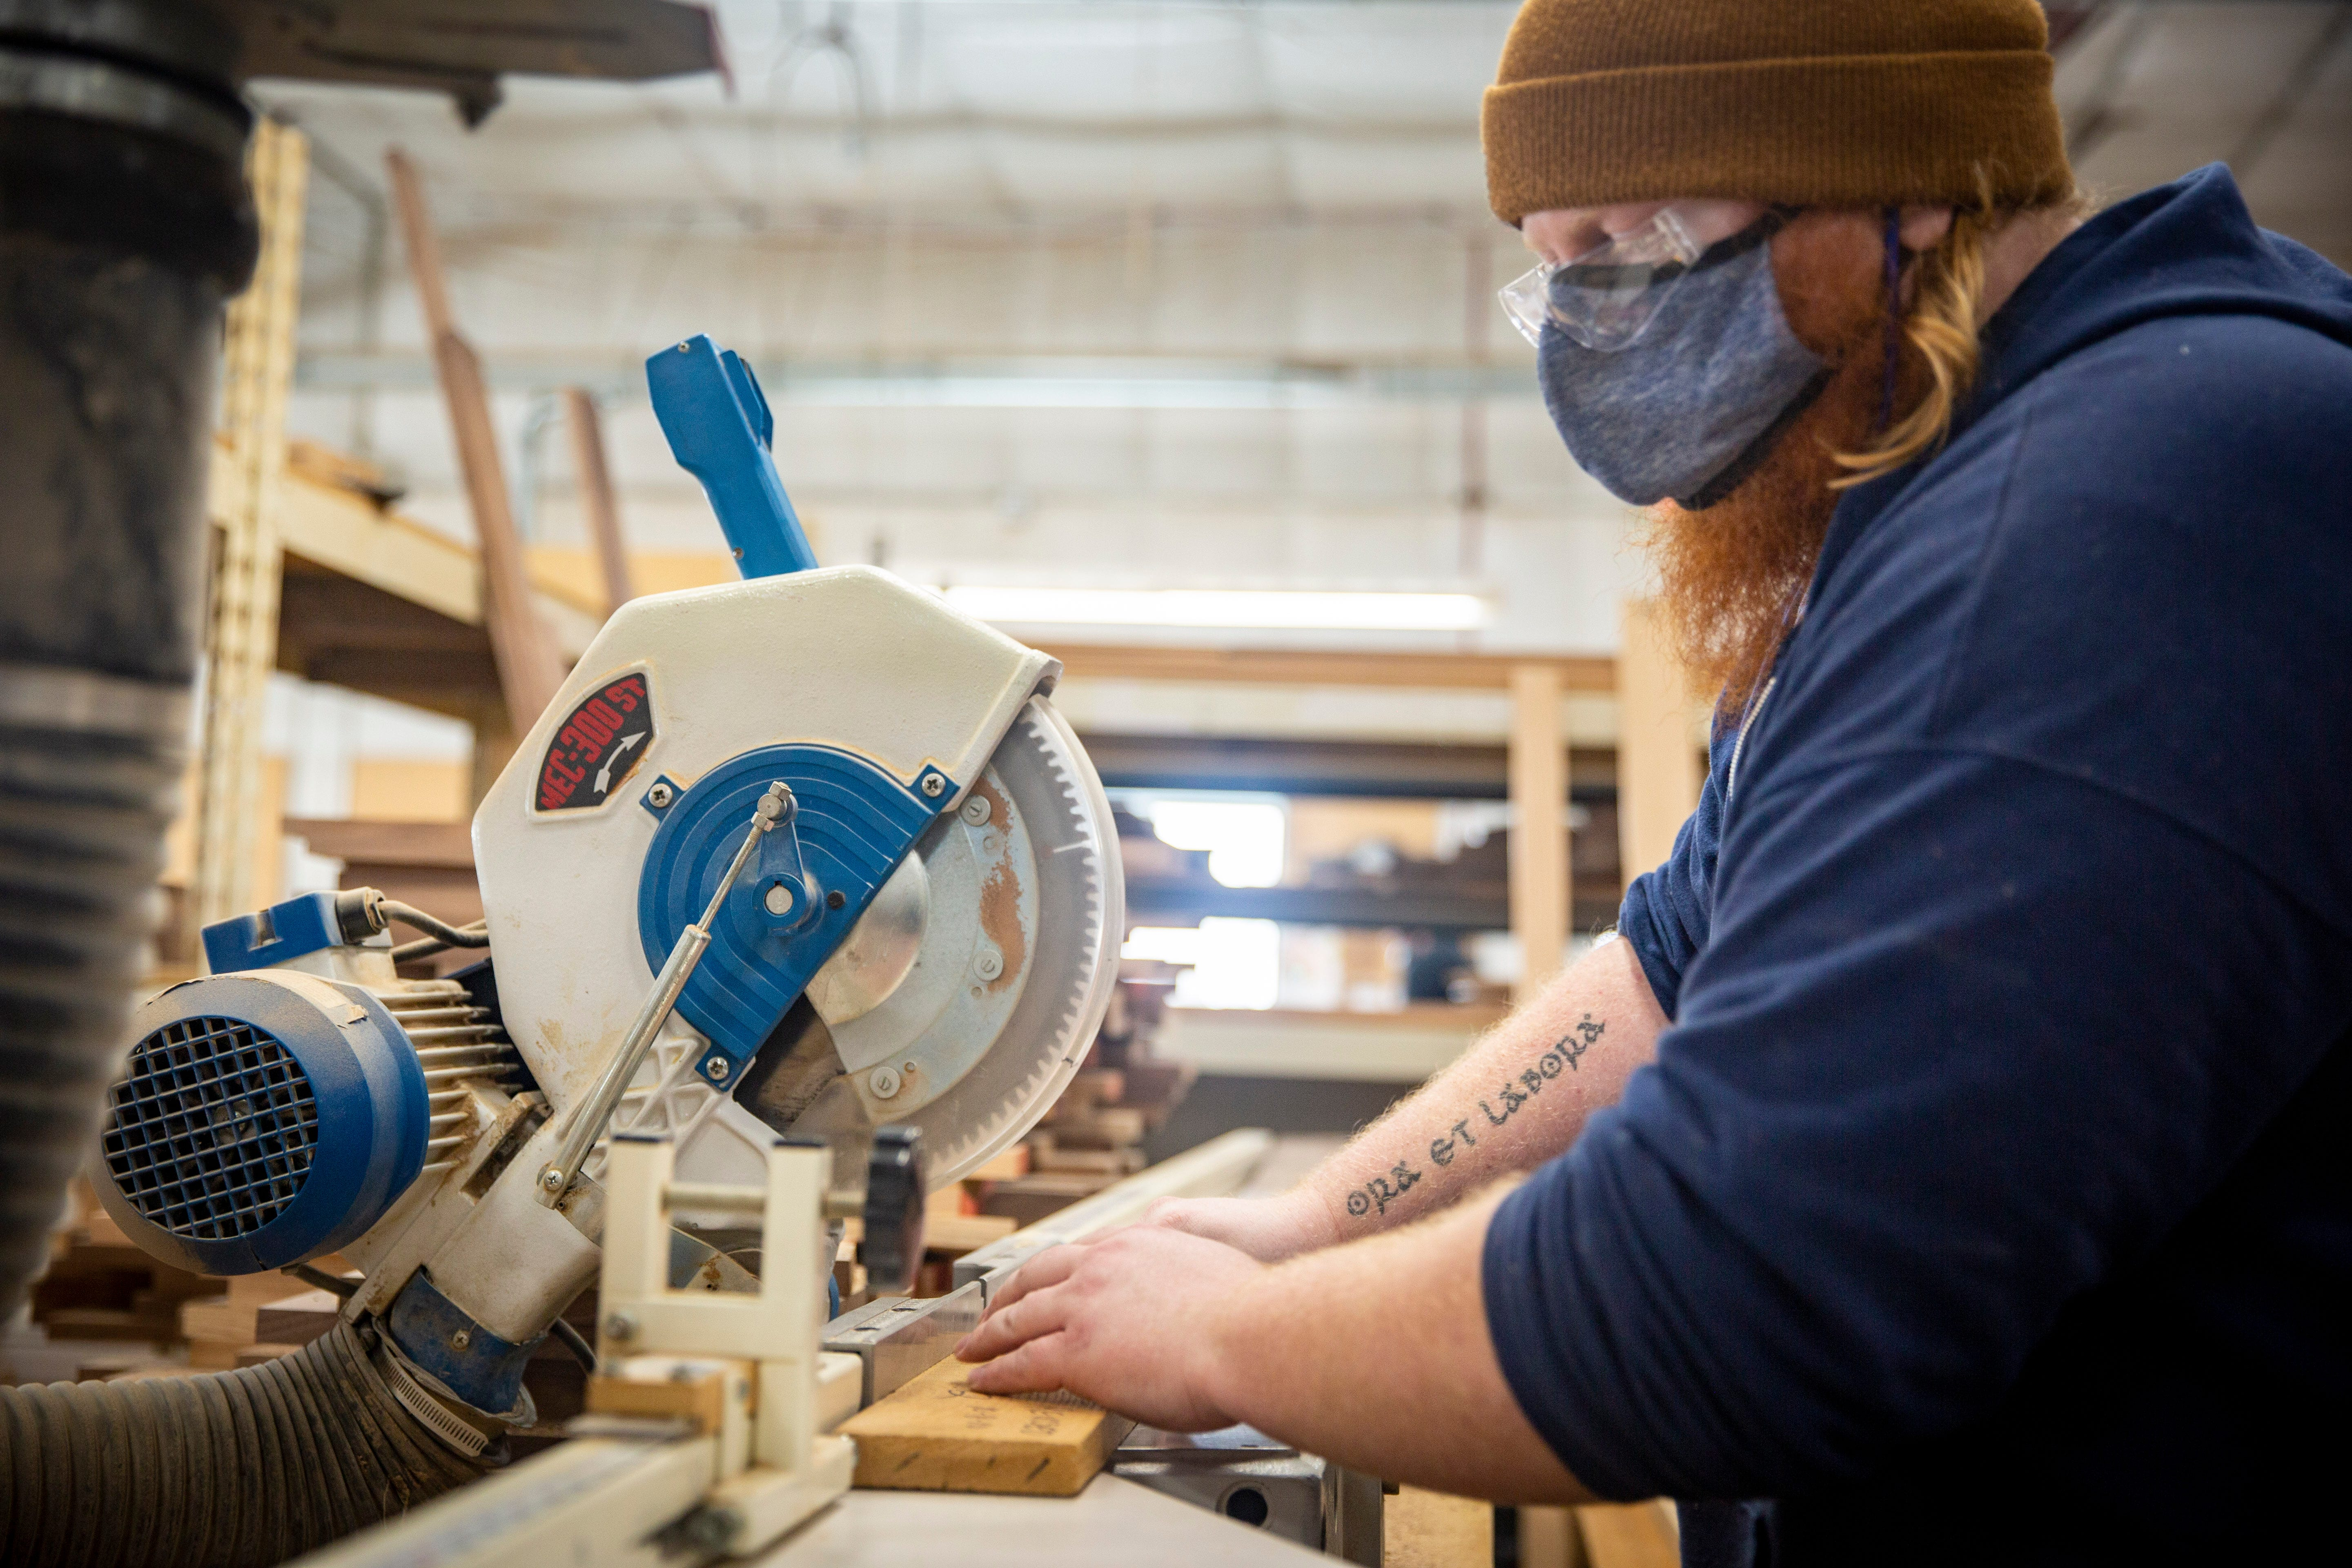 """James Knight thought he was taking a job building cabinets, not caskets. Now, he has the monks' motto tattooed on his forearm: """"Ora et Labora."""" Pray and Work."""